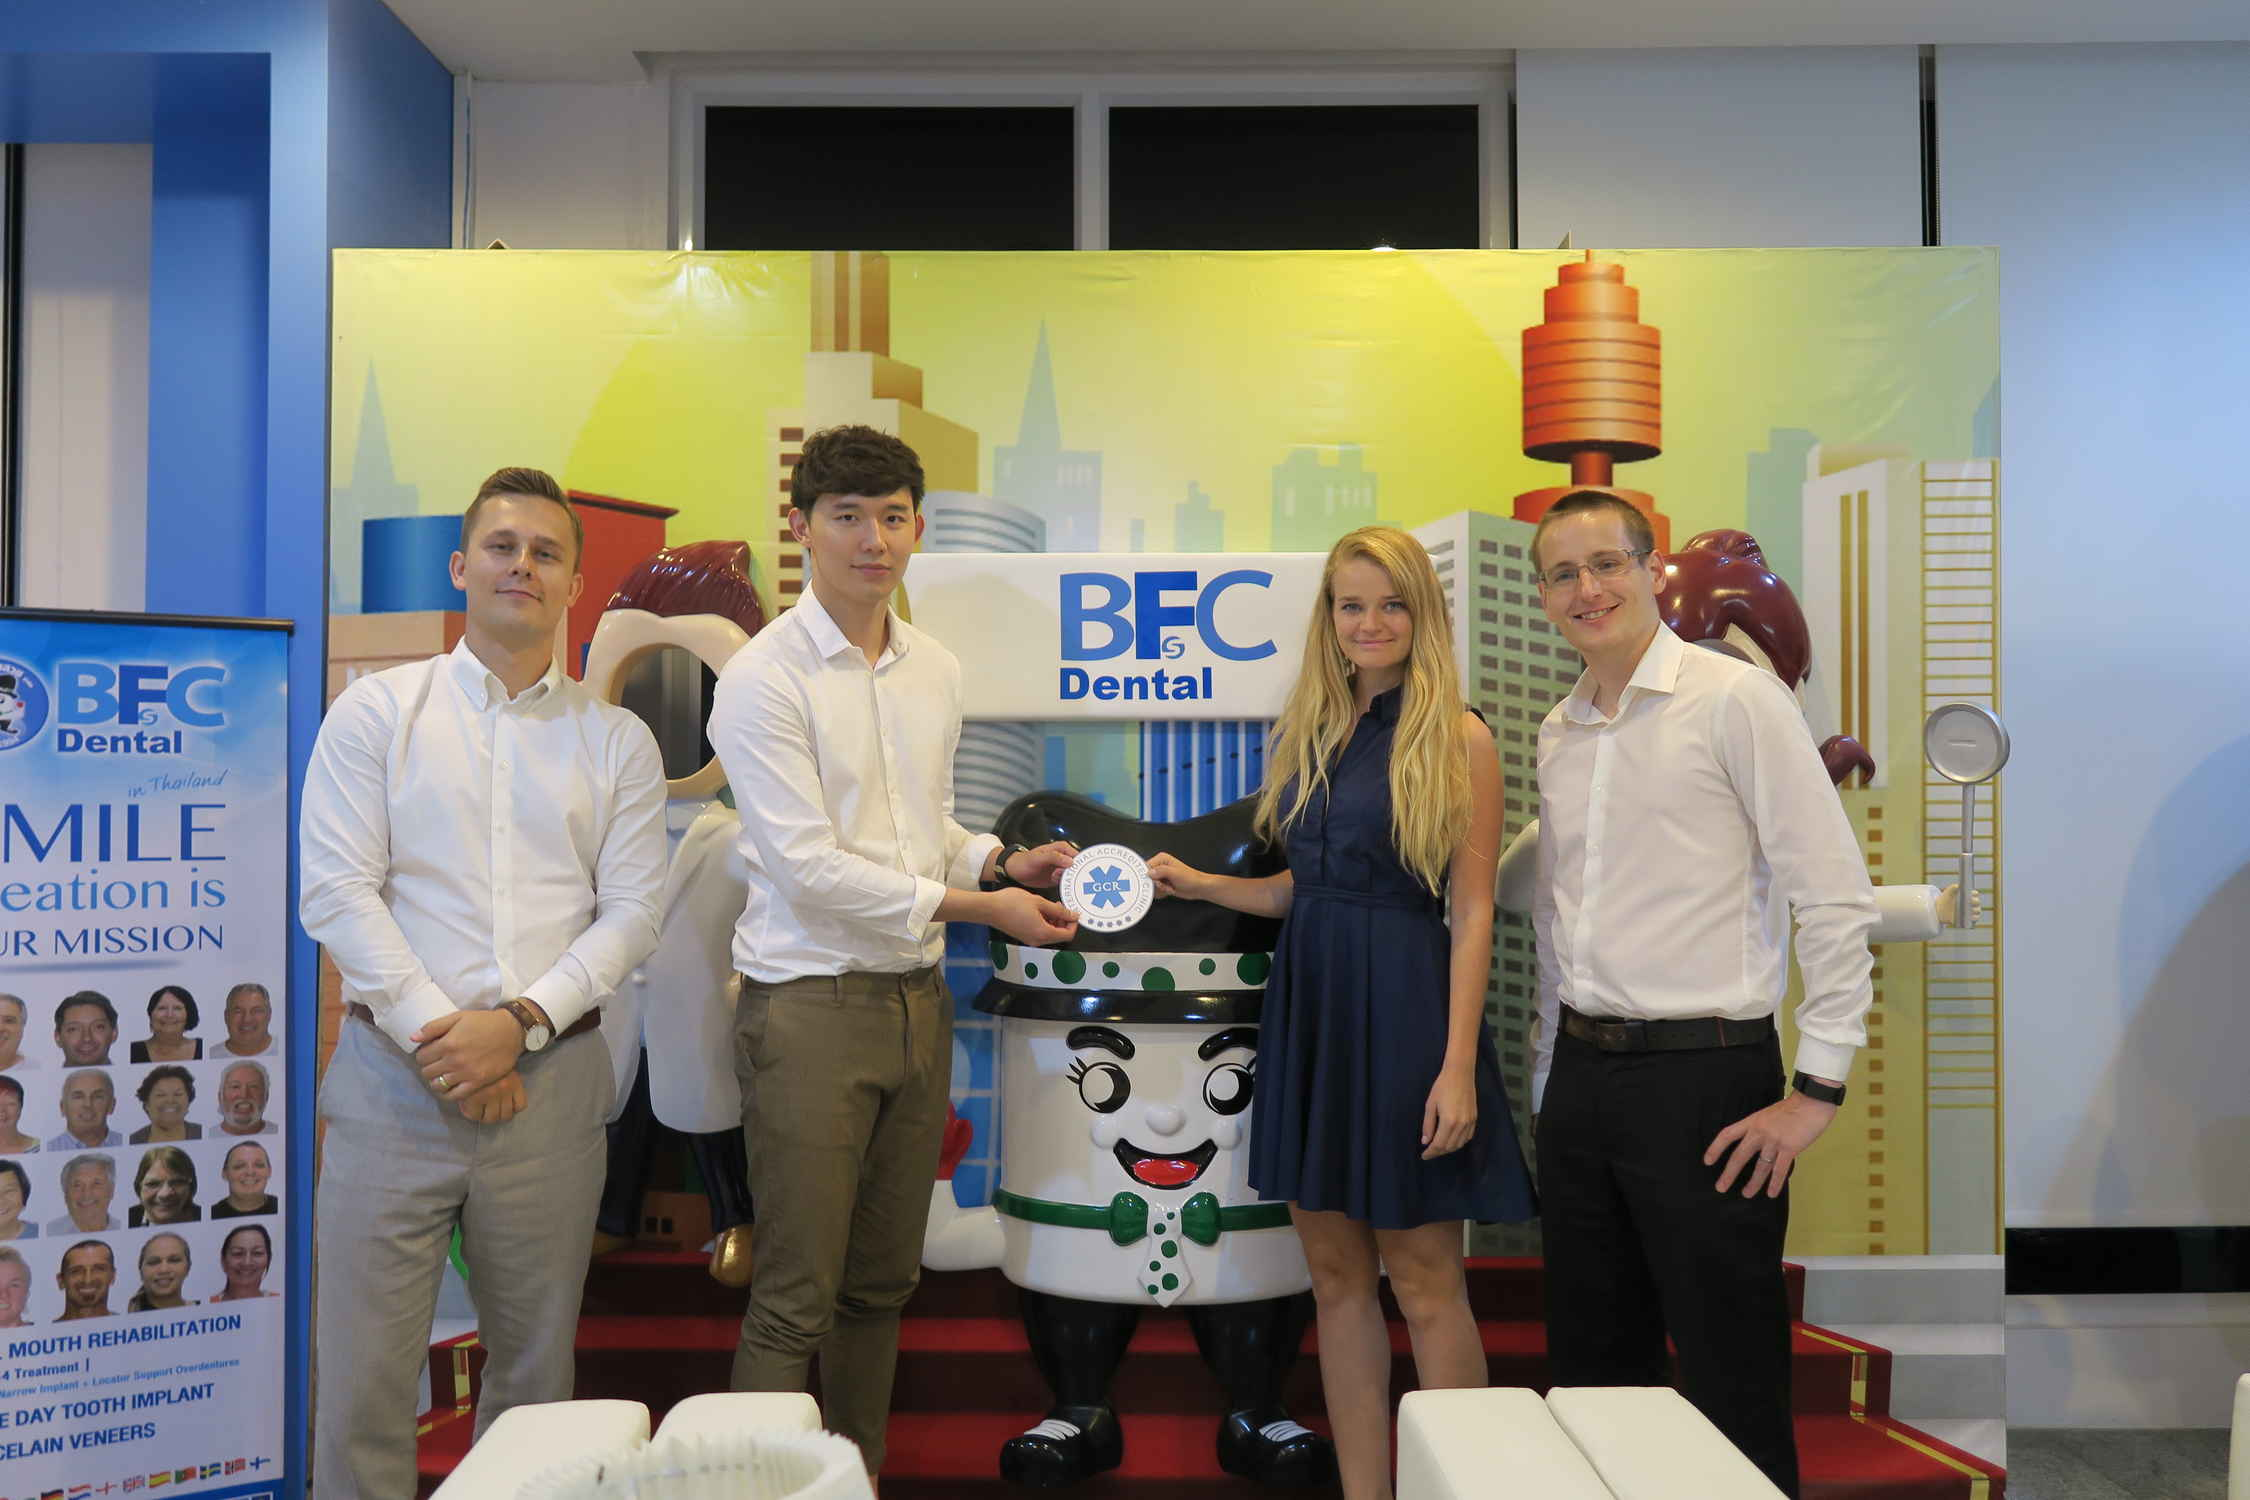 THAILAND: BFC Dental – GCR™ Internationally Accredited